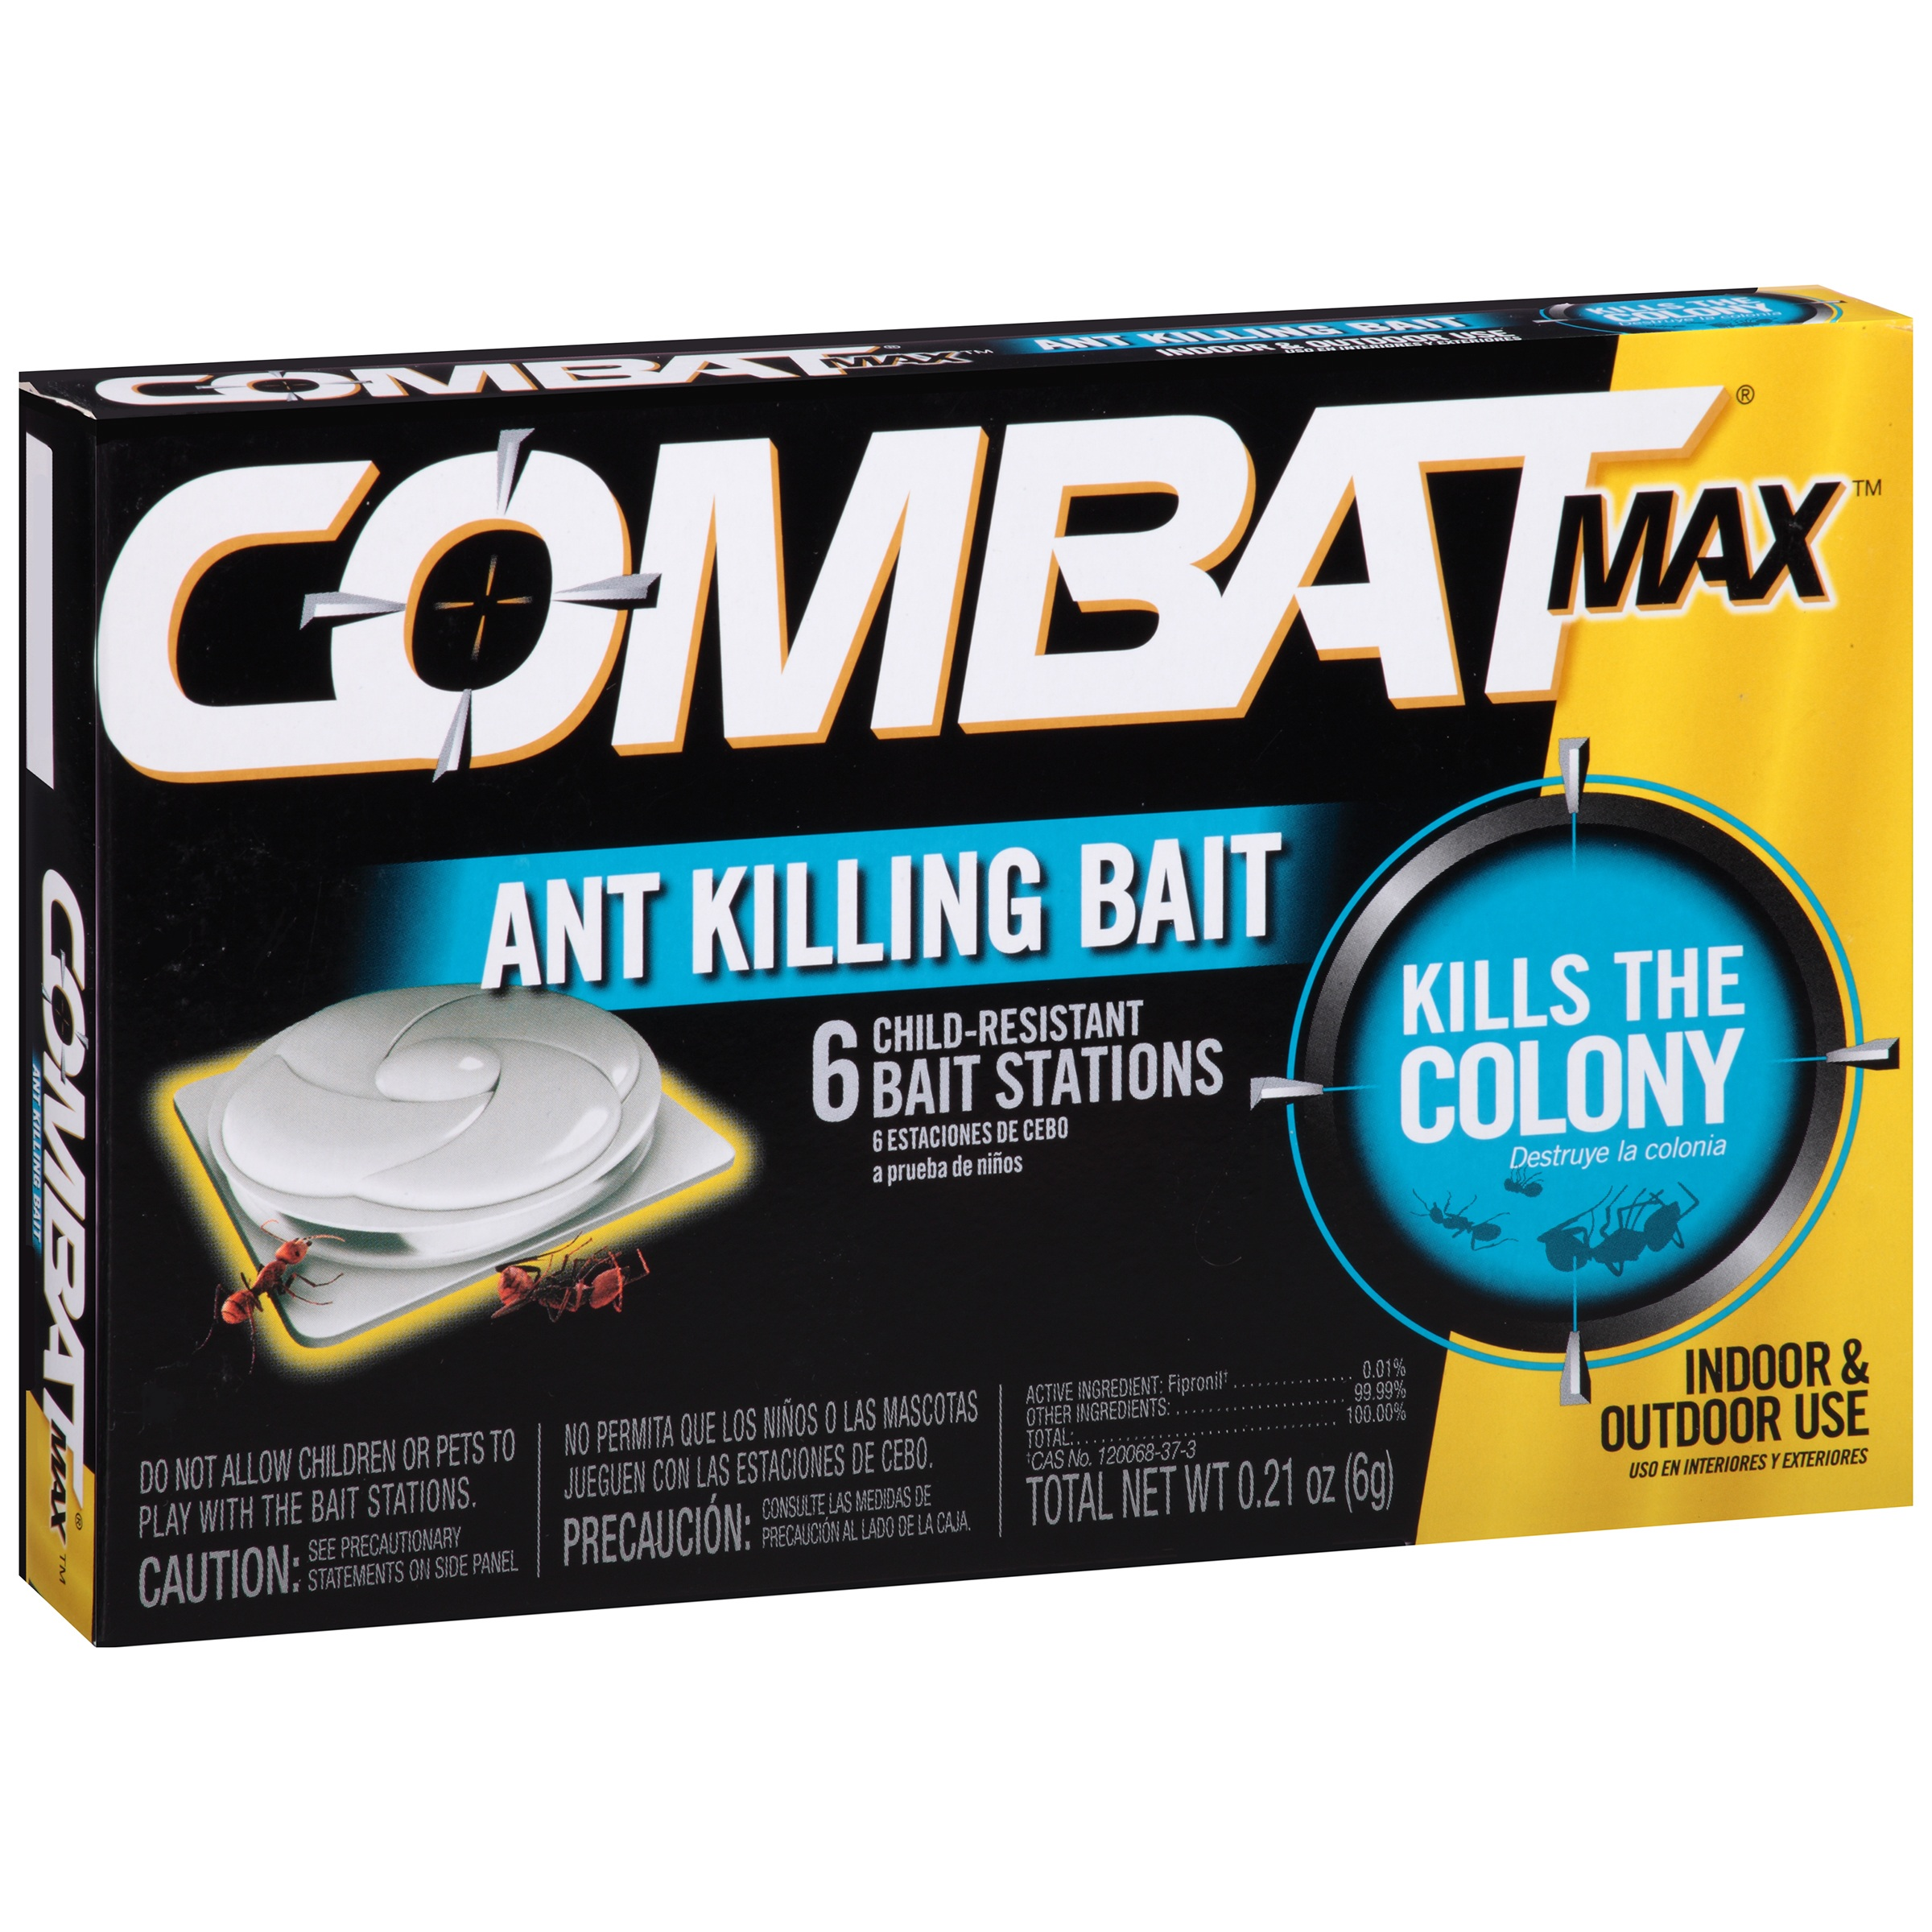 Combat® Max™ Indoor & Outdoor Use Ant Killing Bait Stations 6 ct Box